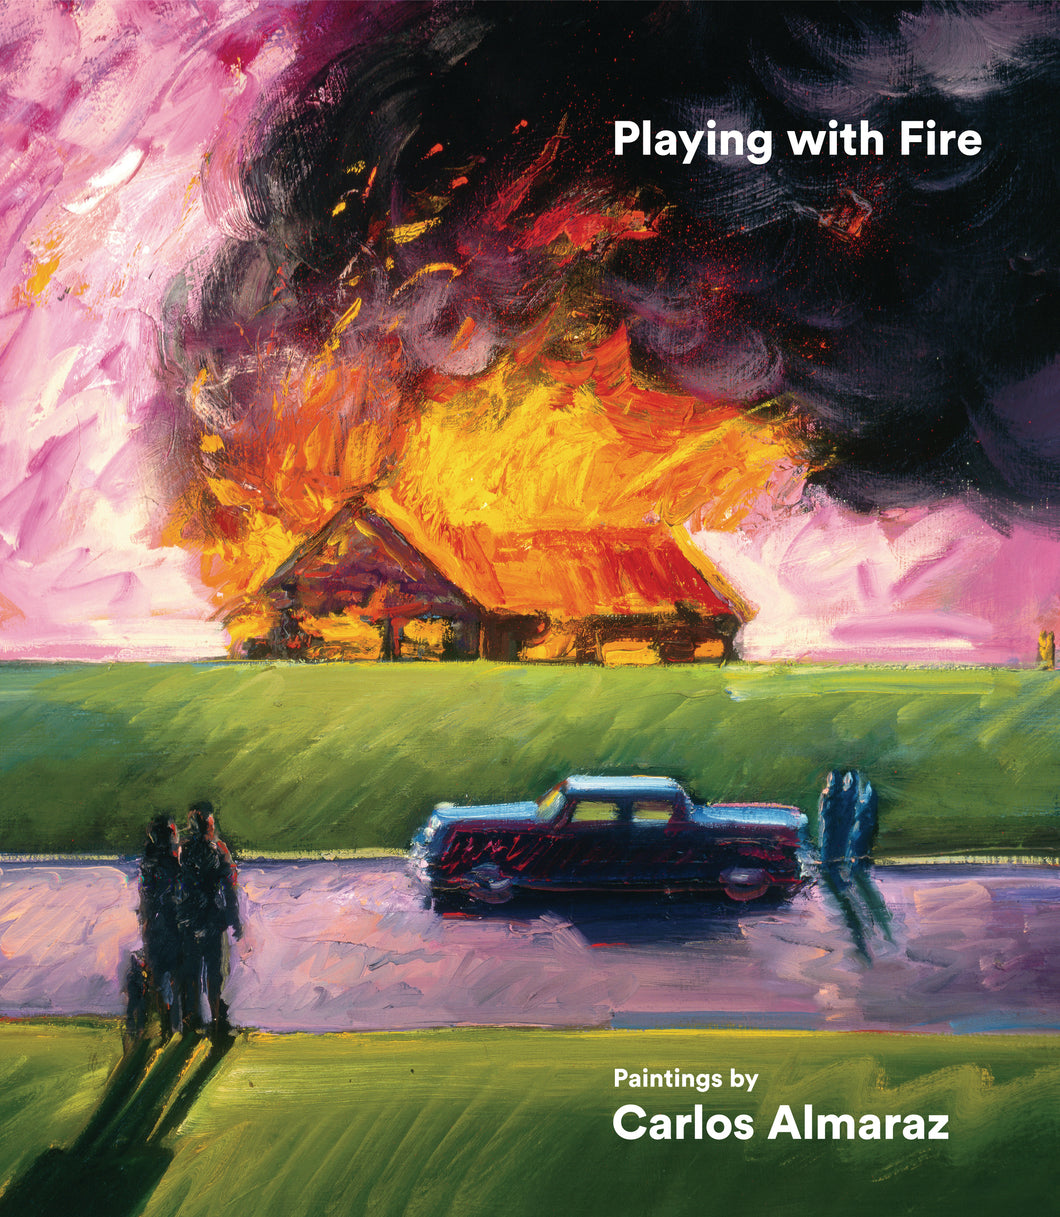 Playing with Fire by Carlos Almaraz